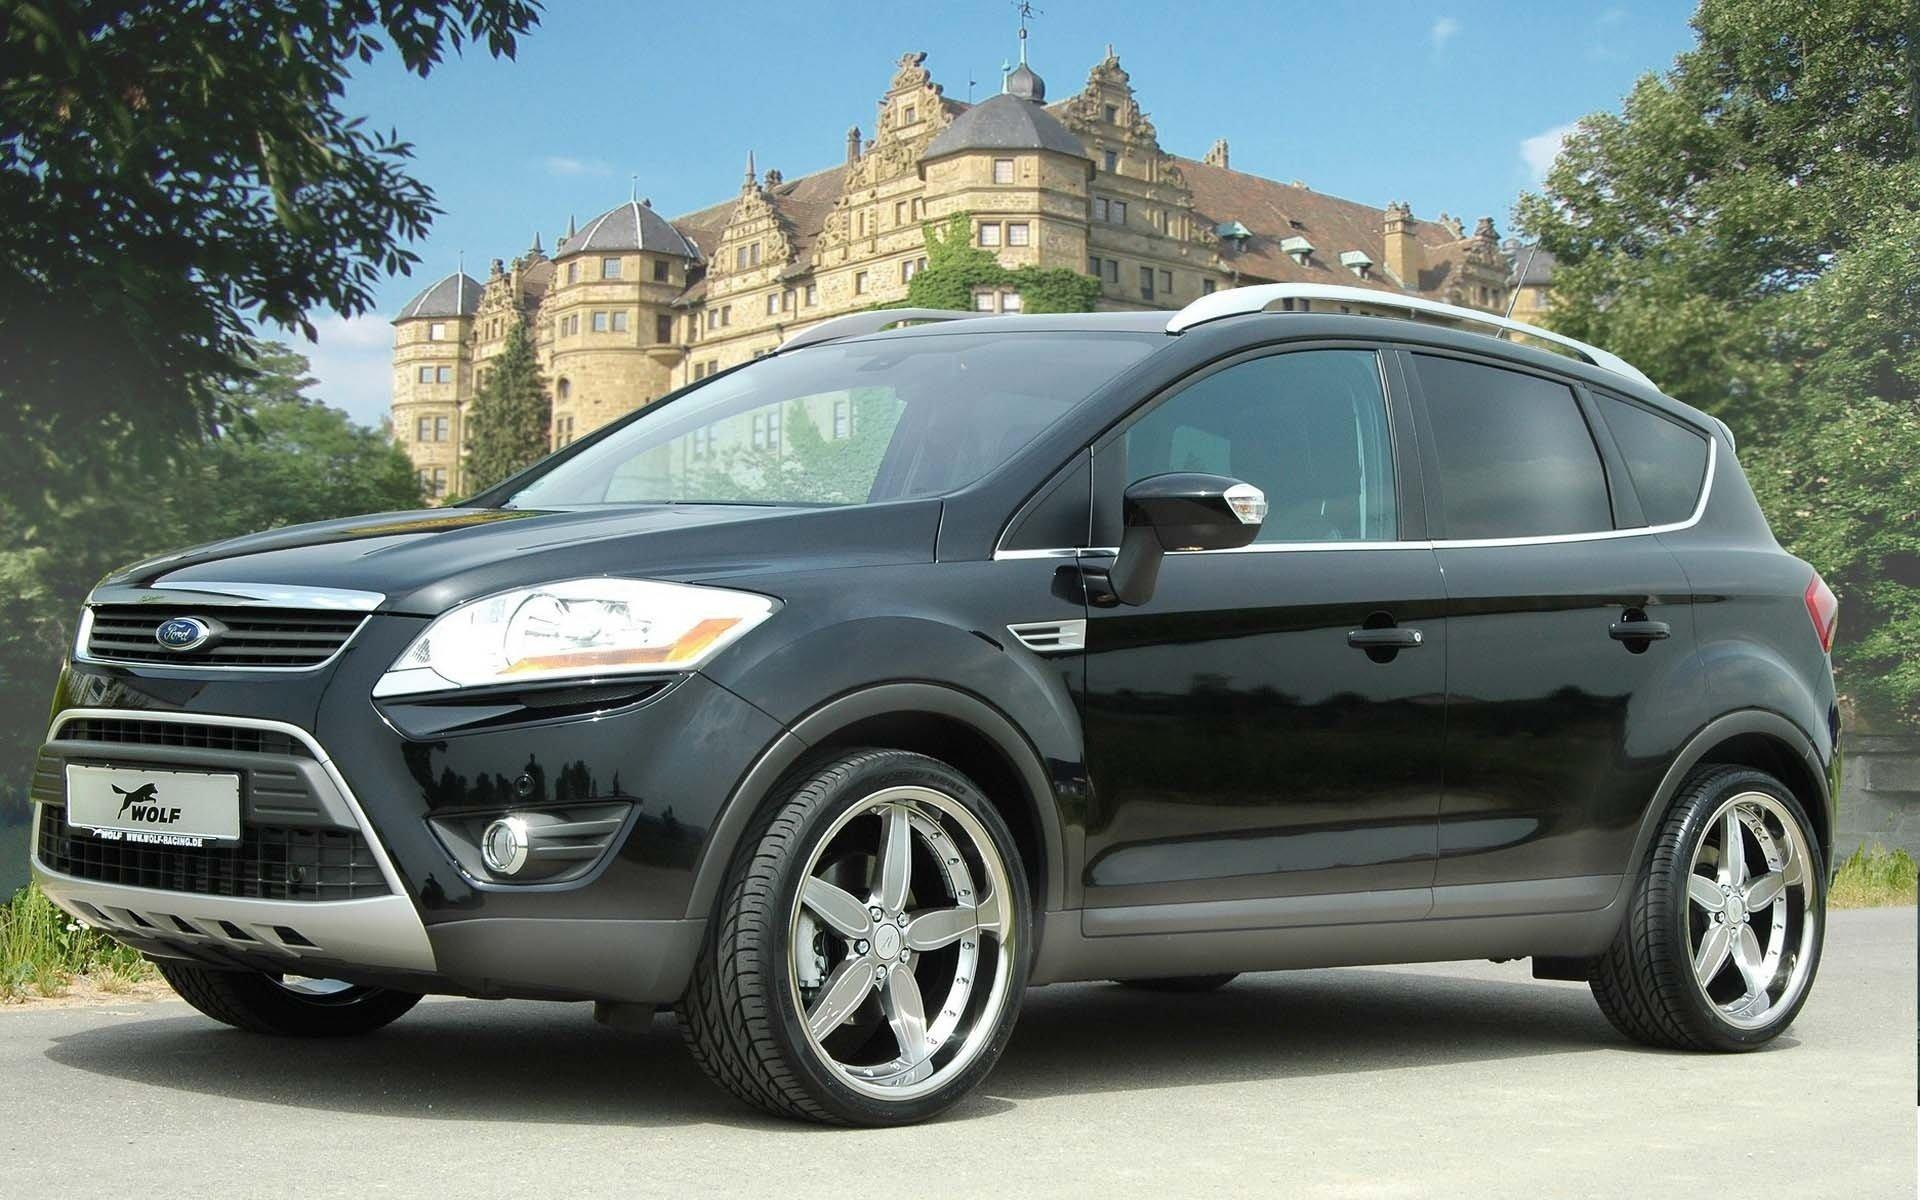 1 Ford Kuga HD Wallpapers | Background Images - Wallpaper Abyss